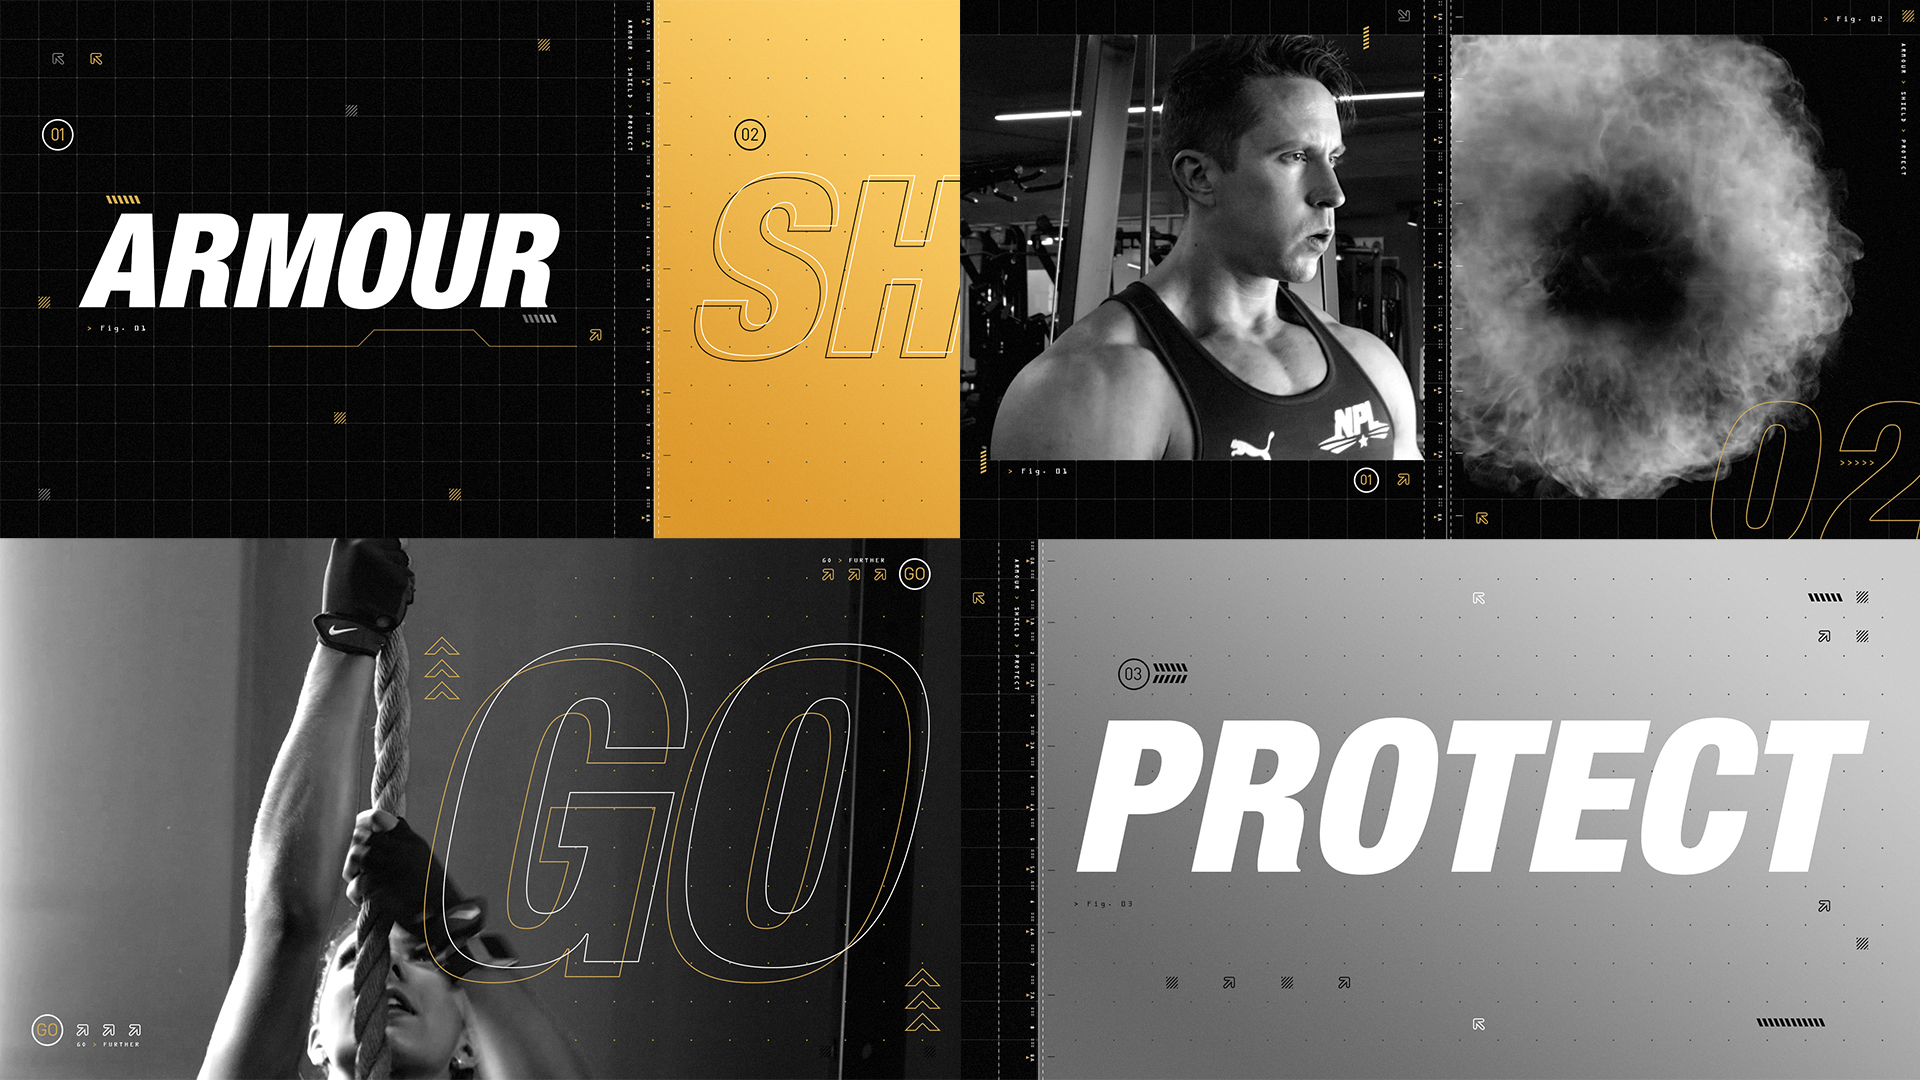 Style frames for NPL's Muscle Armour launch promo